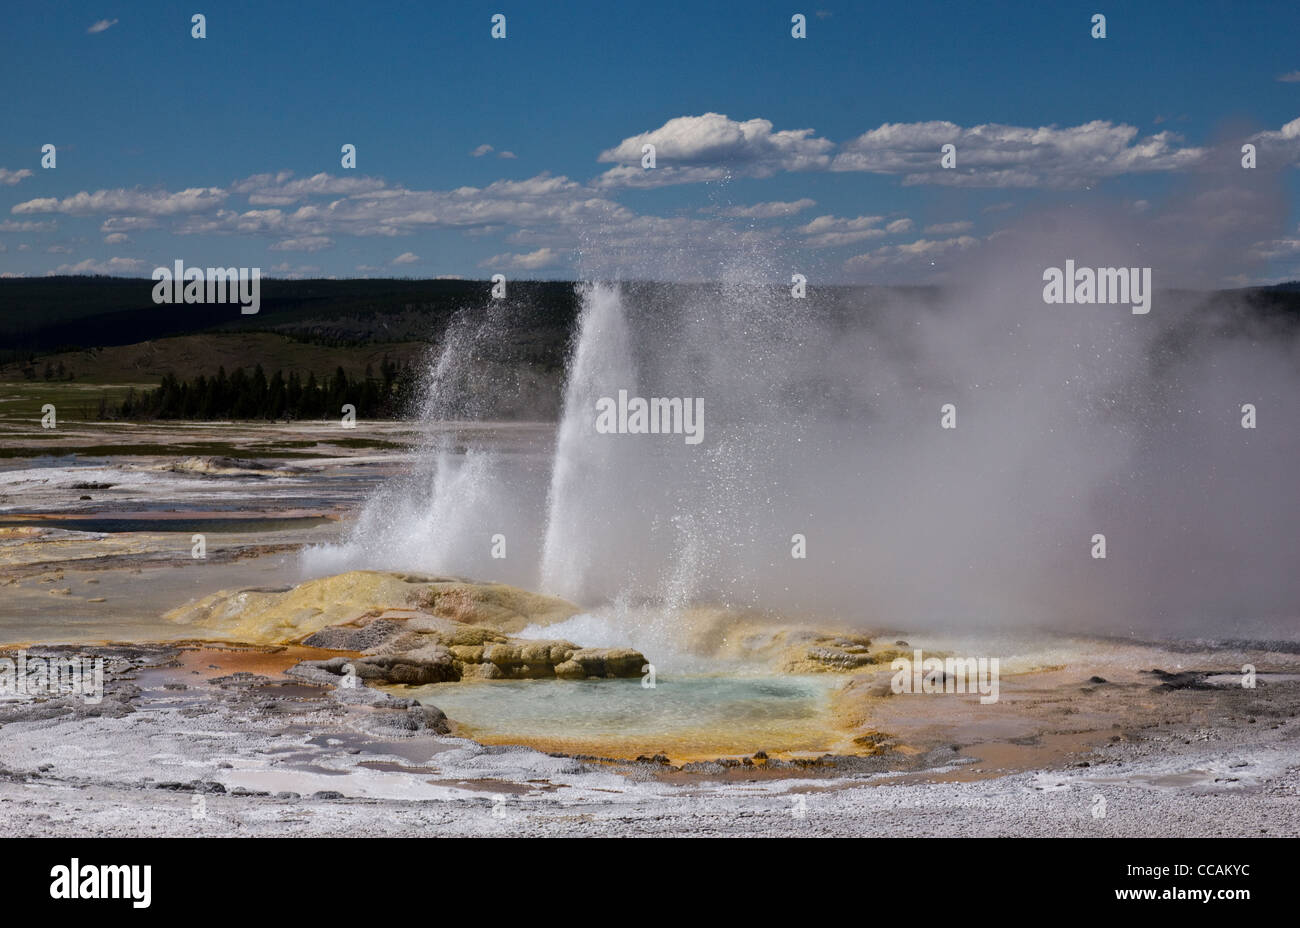 Clepsydra Geyser found in the lower geyser basin in Yellowstone National Park. - Stock Image